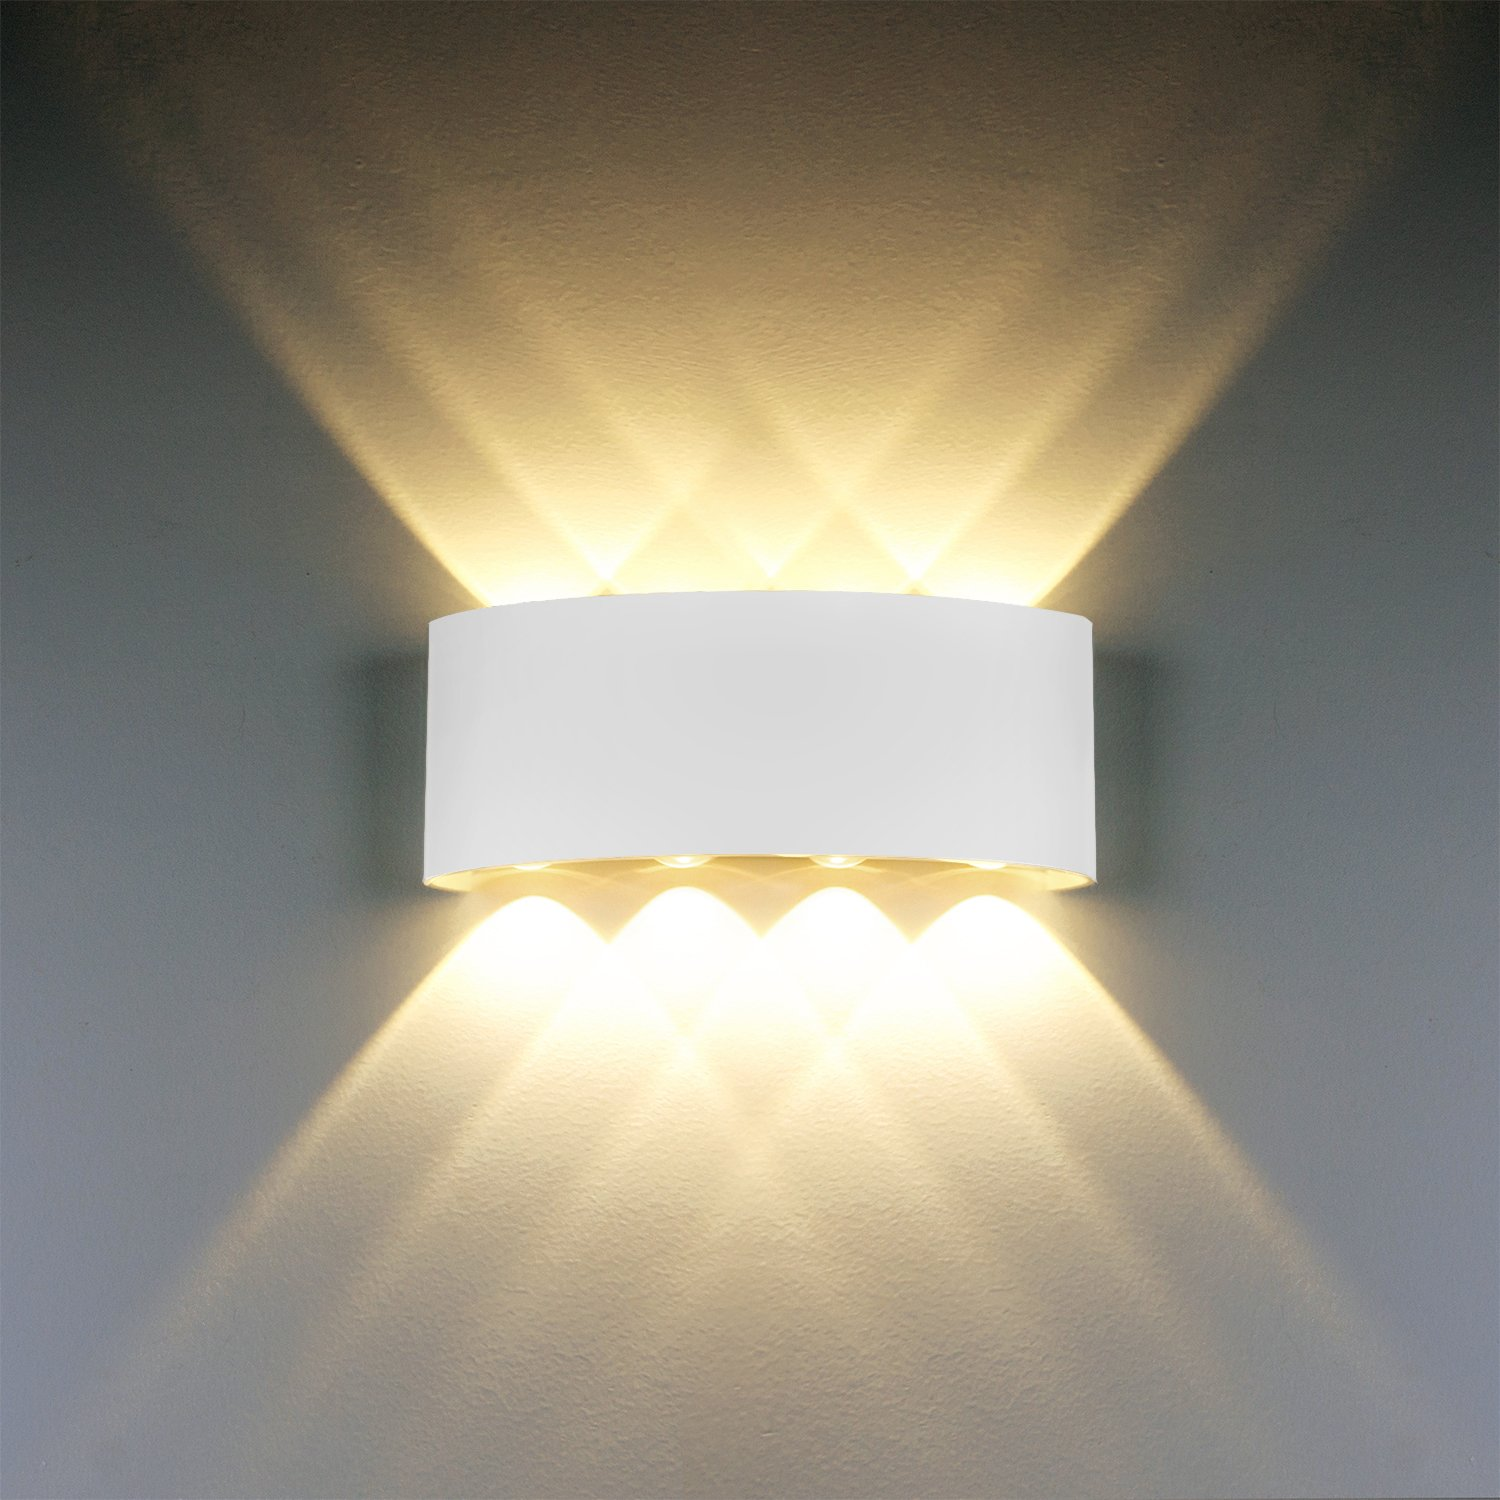 Modern wall light 8w white led sconce up down lamp aluminium modern wall light 8w white led sconce up down wall lamp aluminium led waterproof spot light night lamp for living room bedroom hallway aloadofball Image collections